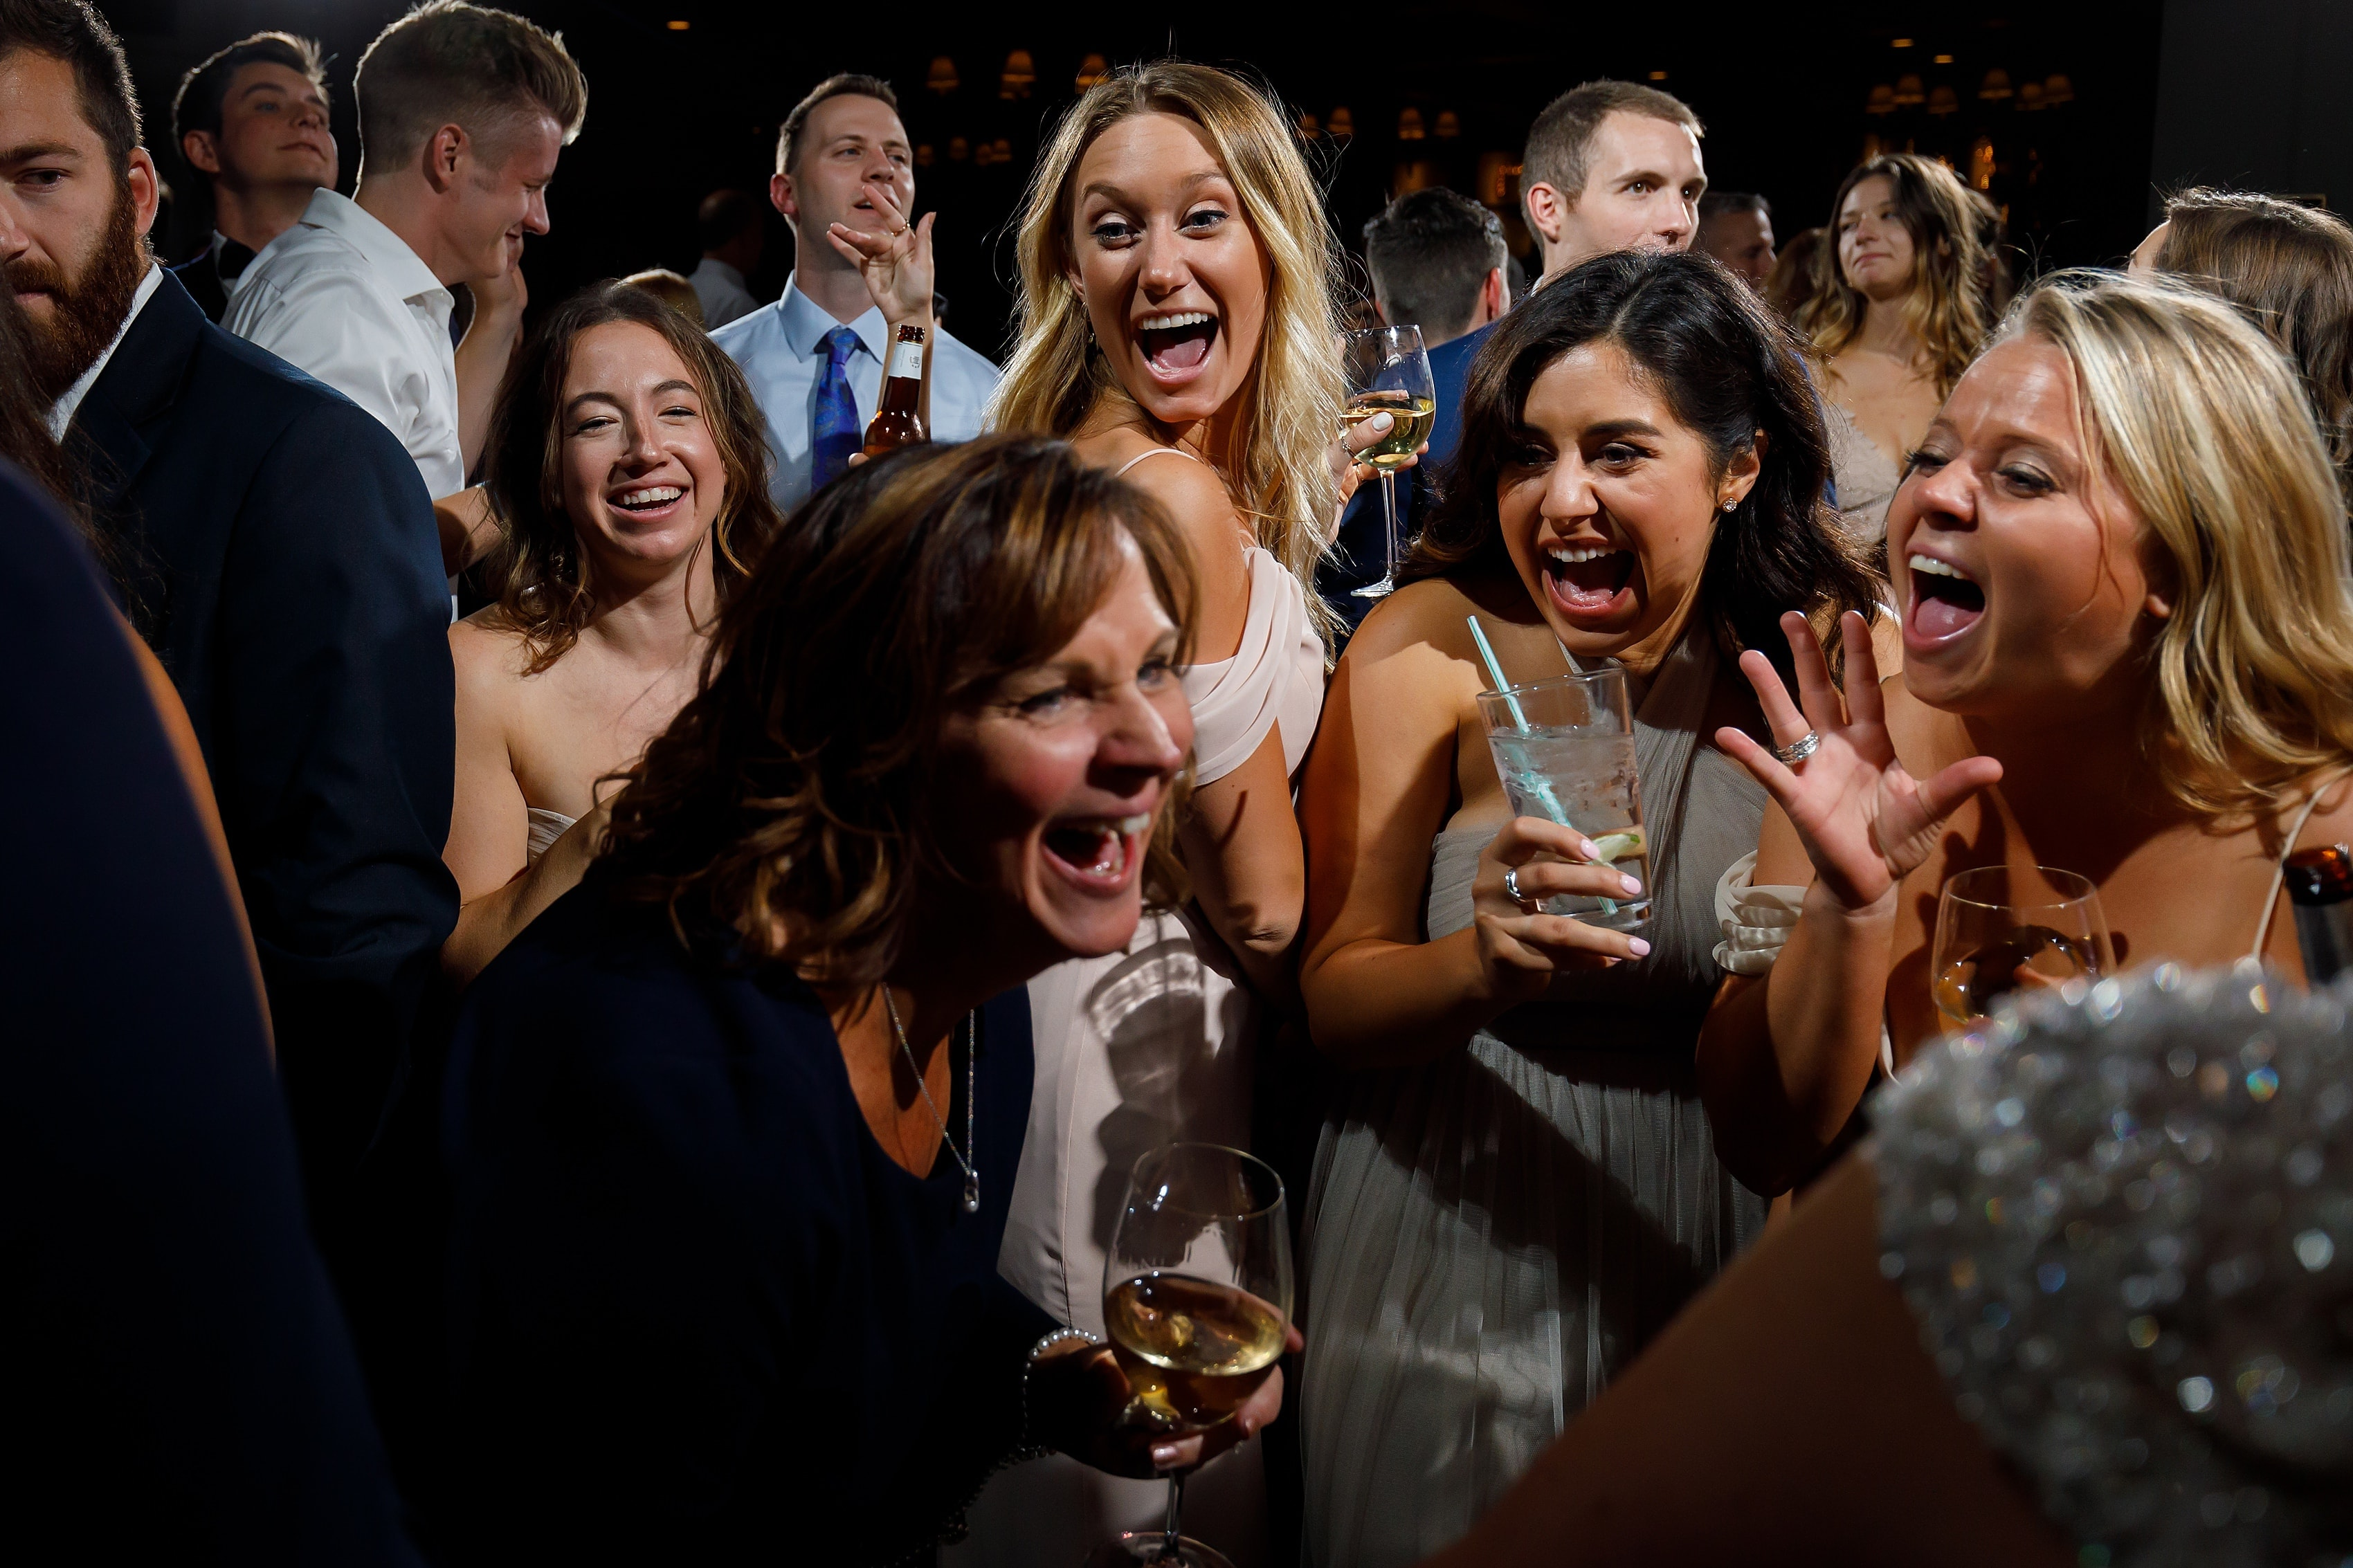 Wedding guests dance during reception at Lake Geneva Yacht Club in Lake Geneva, Wisconsin